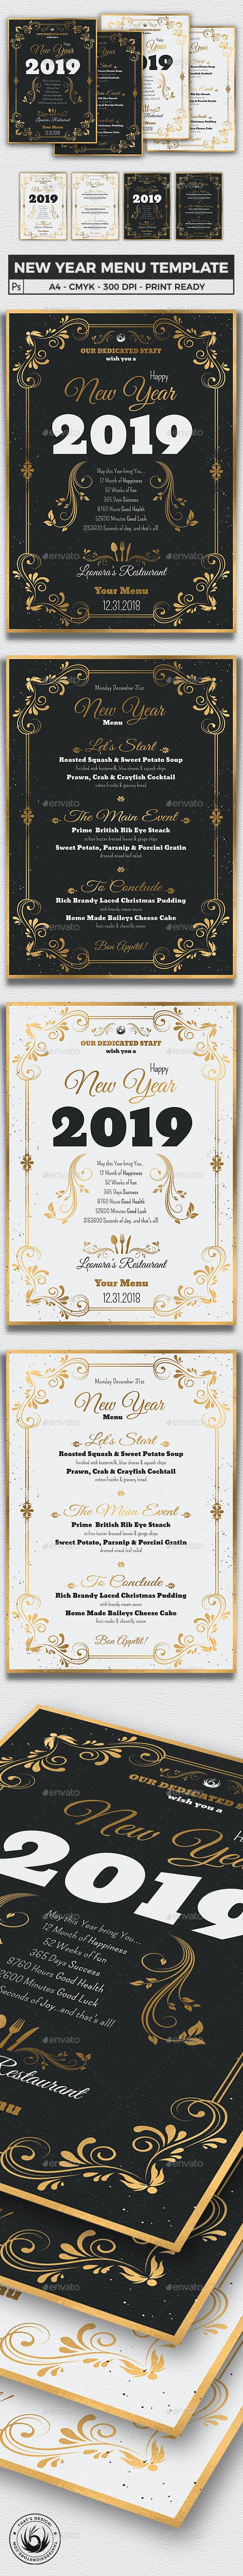 new year menu template v1 holidays events